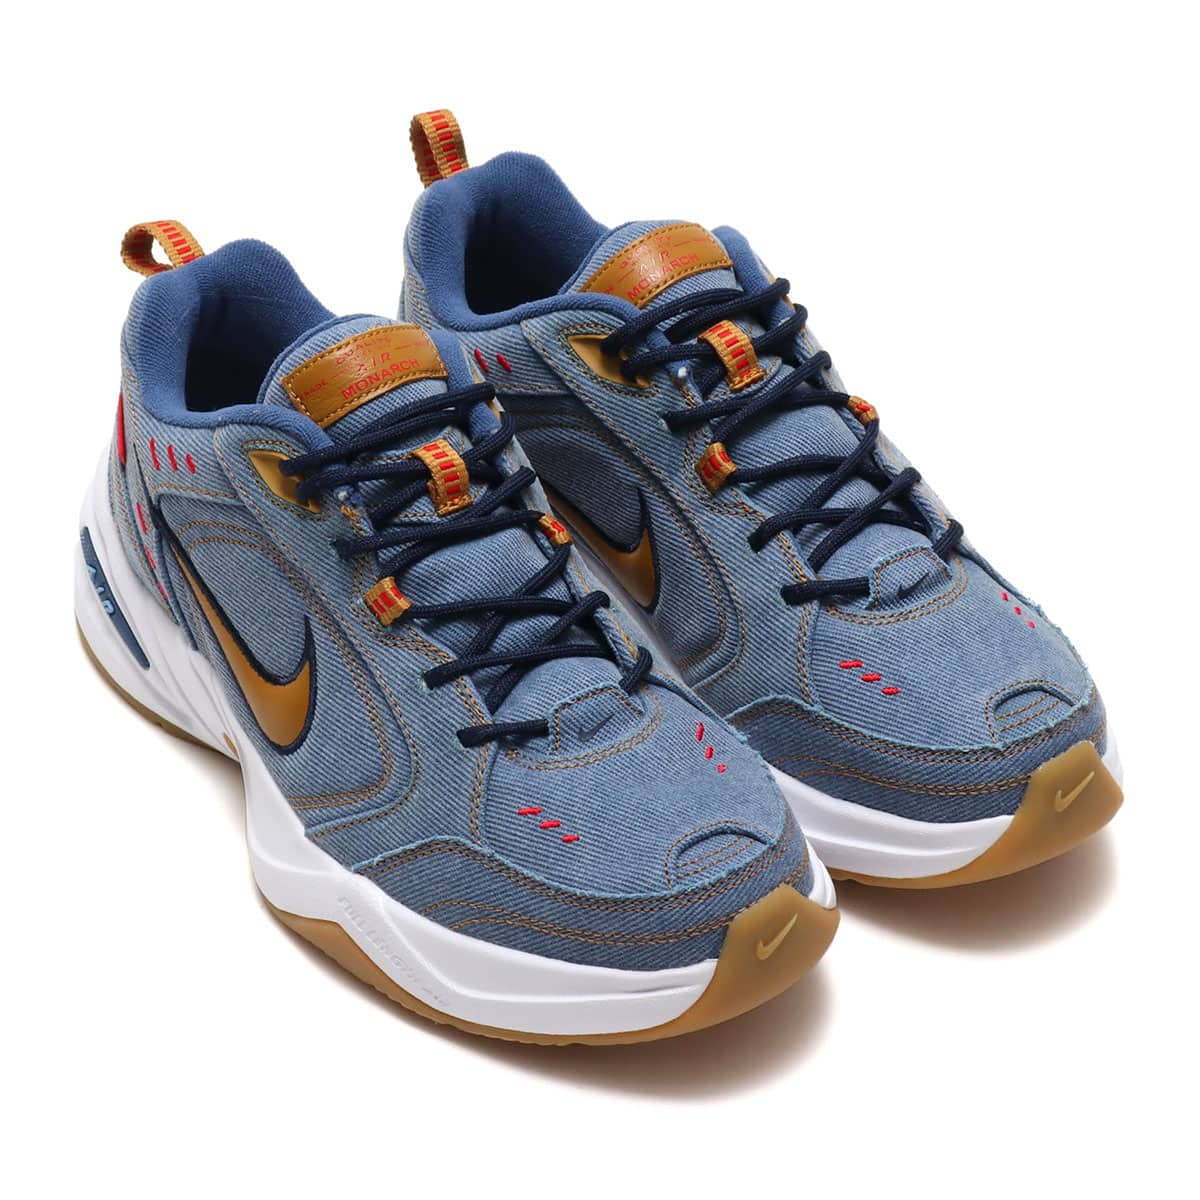 NIKE AIR MONARCH IV PRM COLLEGE NAVY/WHEAT-DECEMBER SKY 19SU-S_photo_large